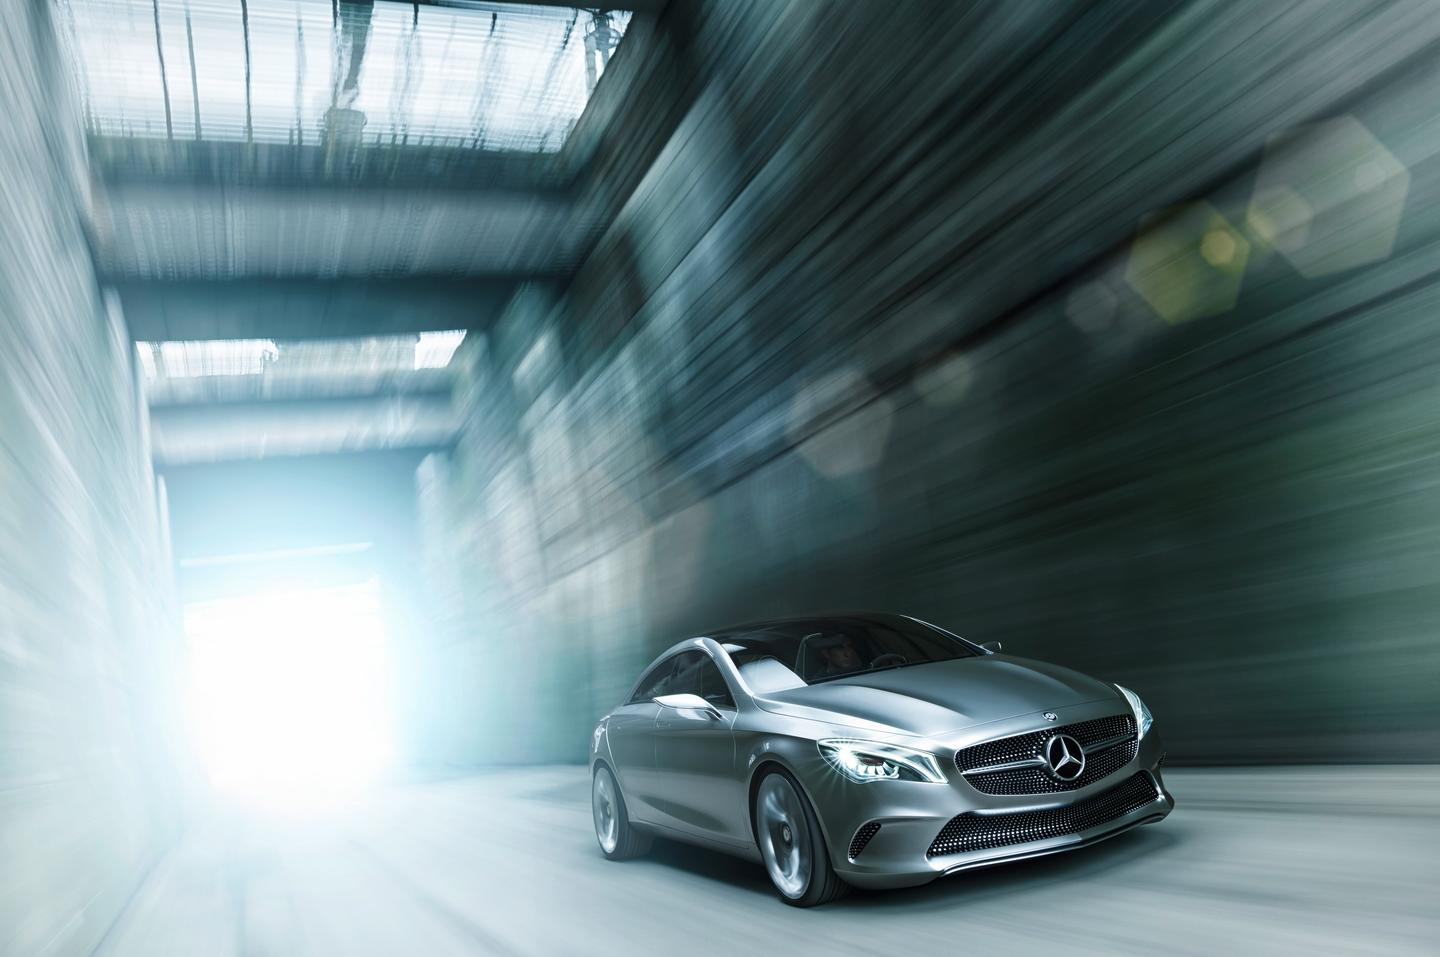 The Mercedes Benz Style Coupe Concept is a sporty executive four-door coupé with a two-liter, four-cylinder, turbo-charged petrol engine producing 211 hp and driving through Mercedes' 4MATIC all-wheel drive system.